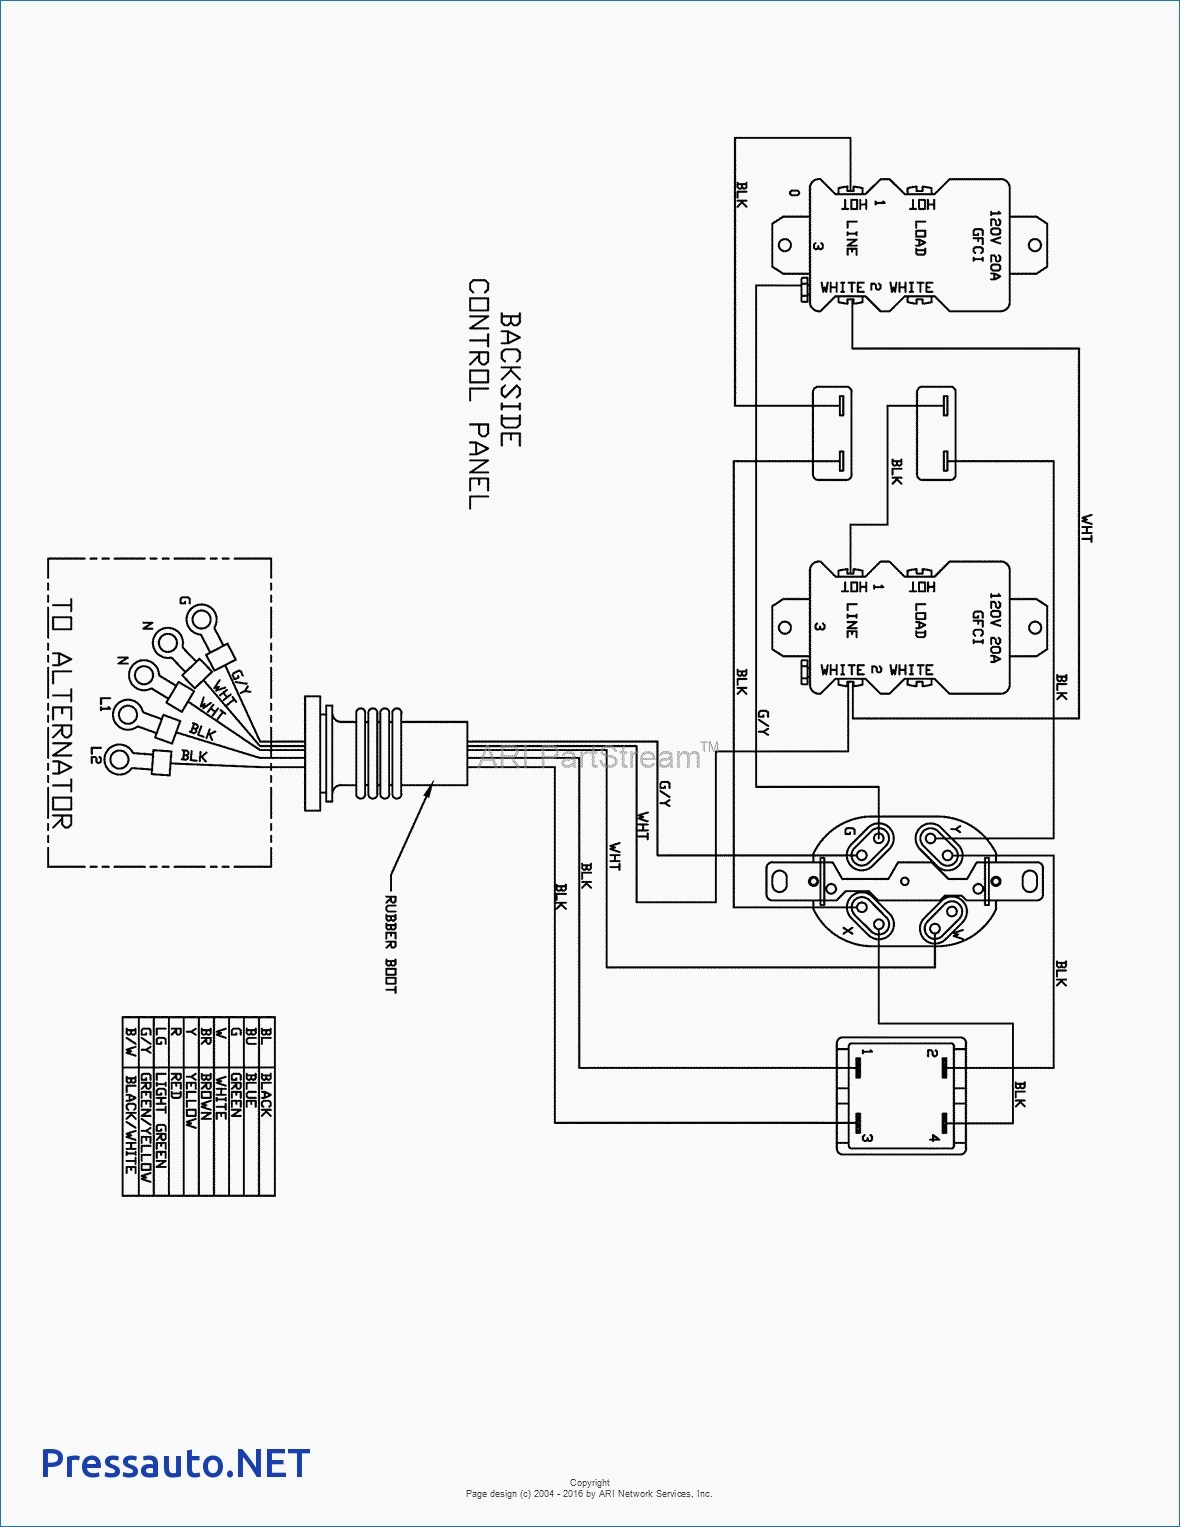 Quicksilver Generator Wiring Diagram - Onan 4000 Generator Wiring Diagram  for Wiring Diagram Schematics | Basler Generator Wiring Diagram |  | Wiring Diagram Schematics